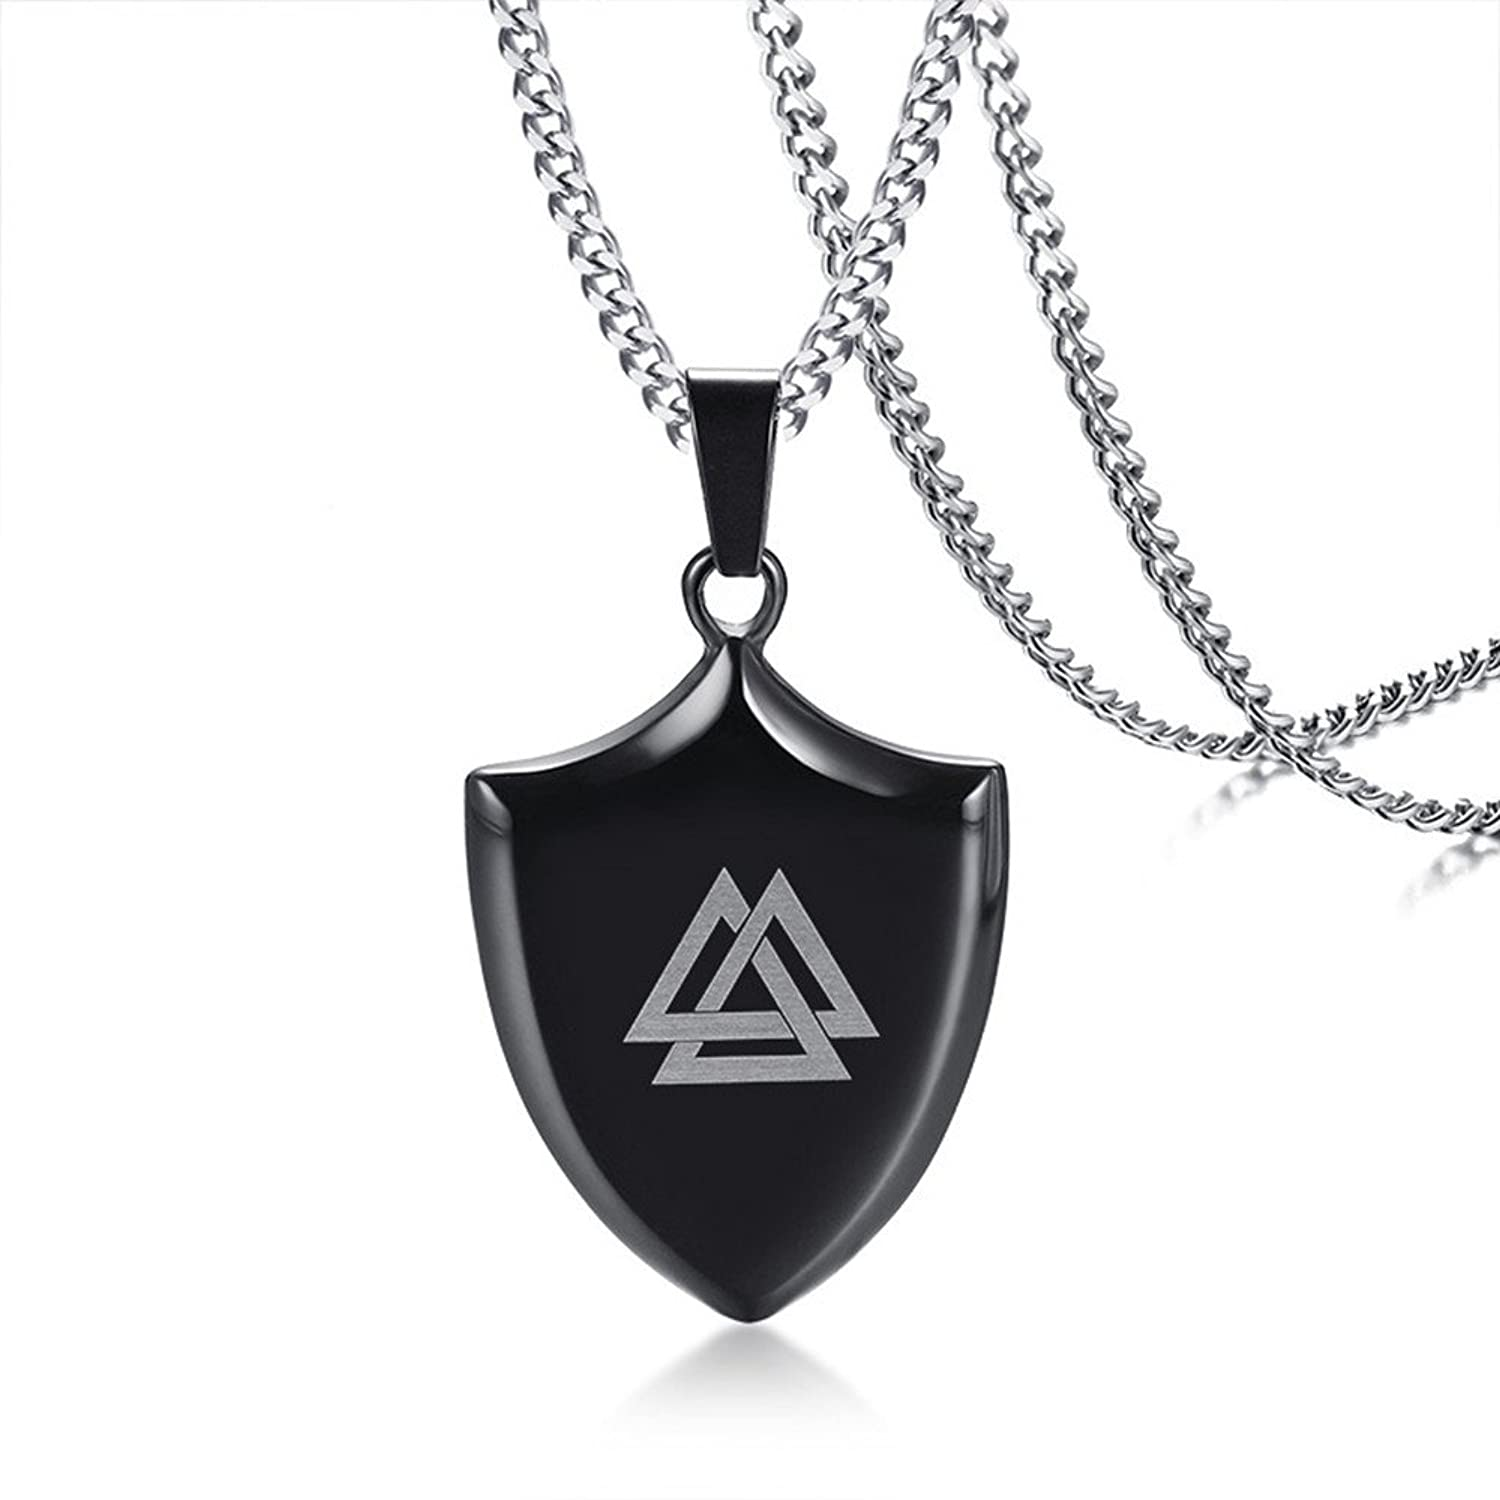 Men/'s Triangle Pendant Stainless Steel Necklace Chain